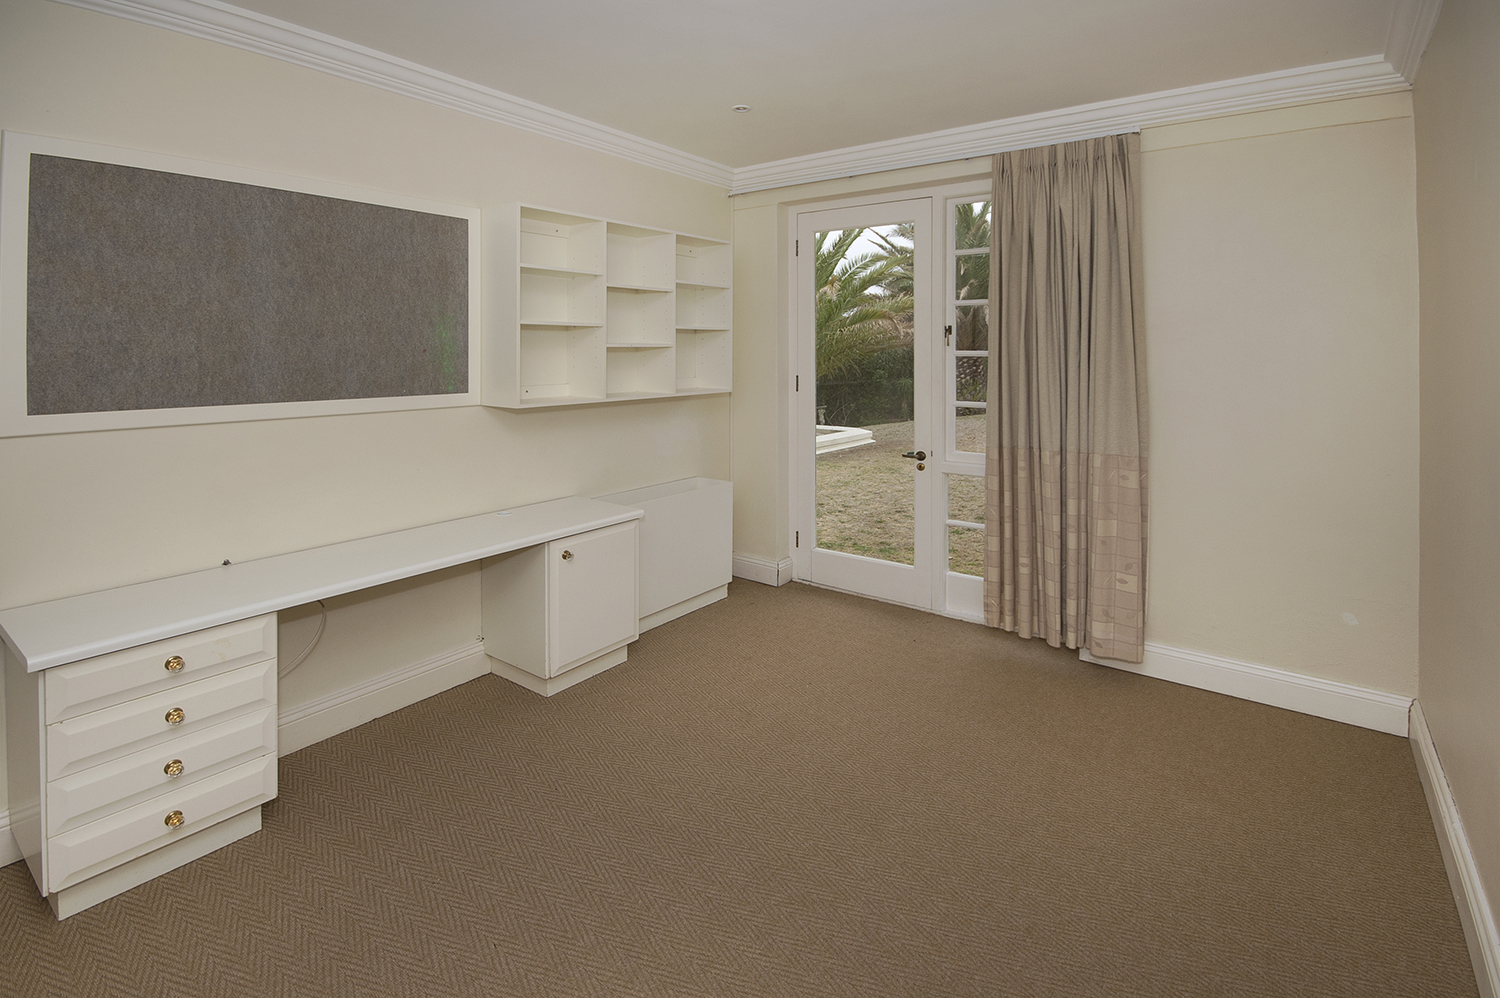 4 Bedroom House for sale in Mill Park ENT0024309 : photo#12